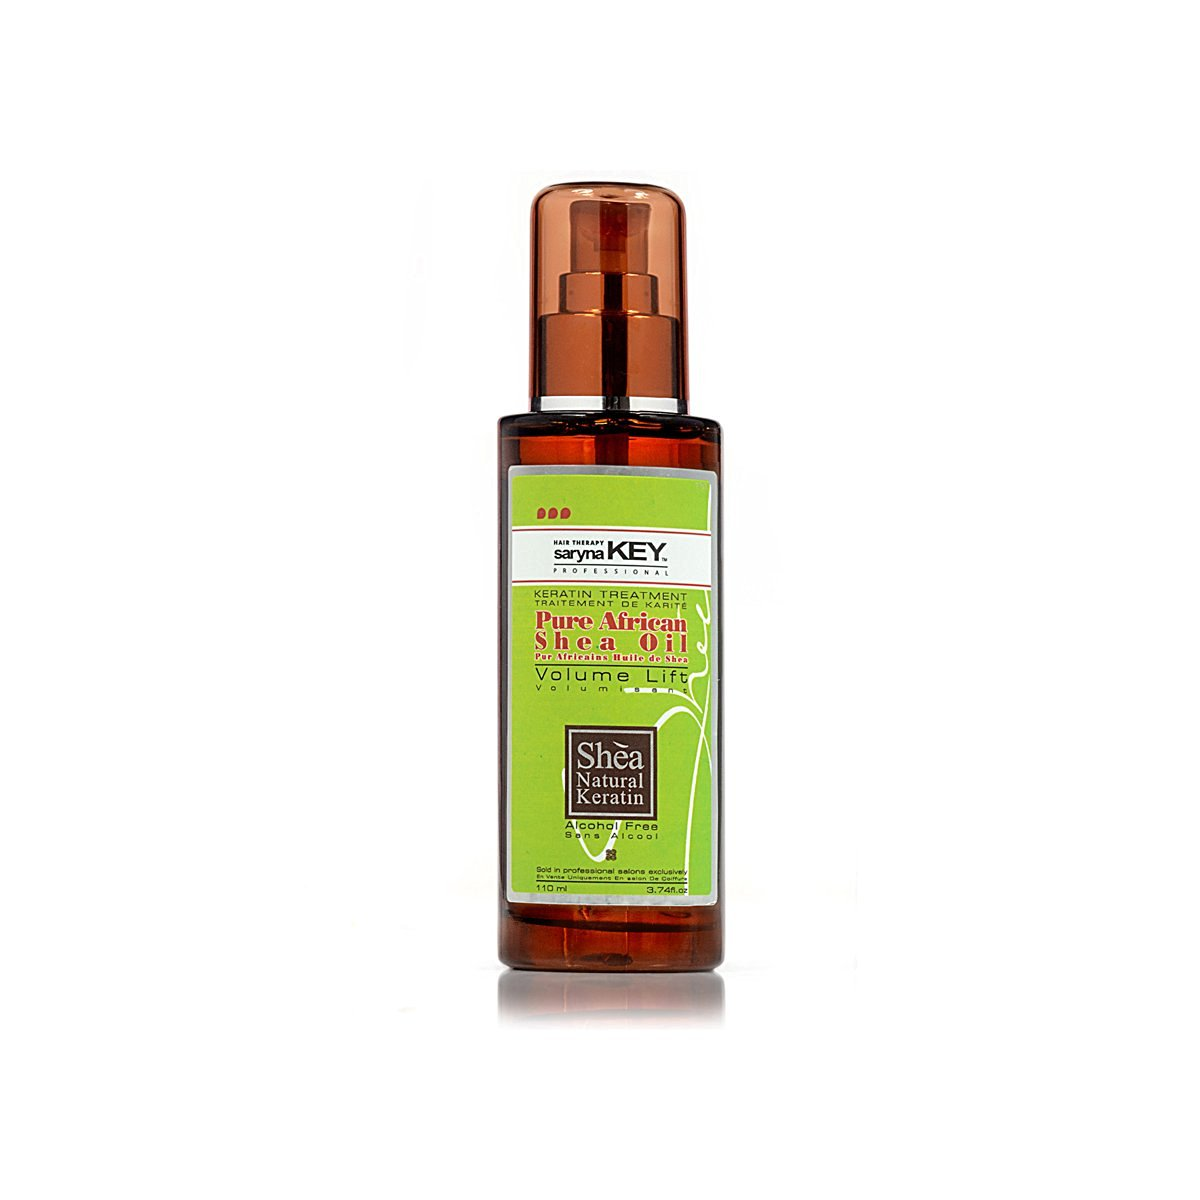 Saryna Key Volume Lift-Pure African Shea Oil, 3.74 Ounce